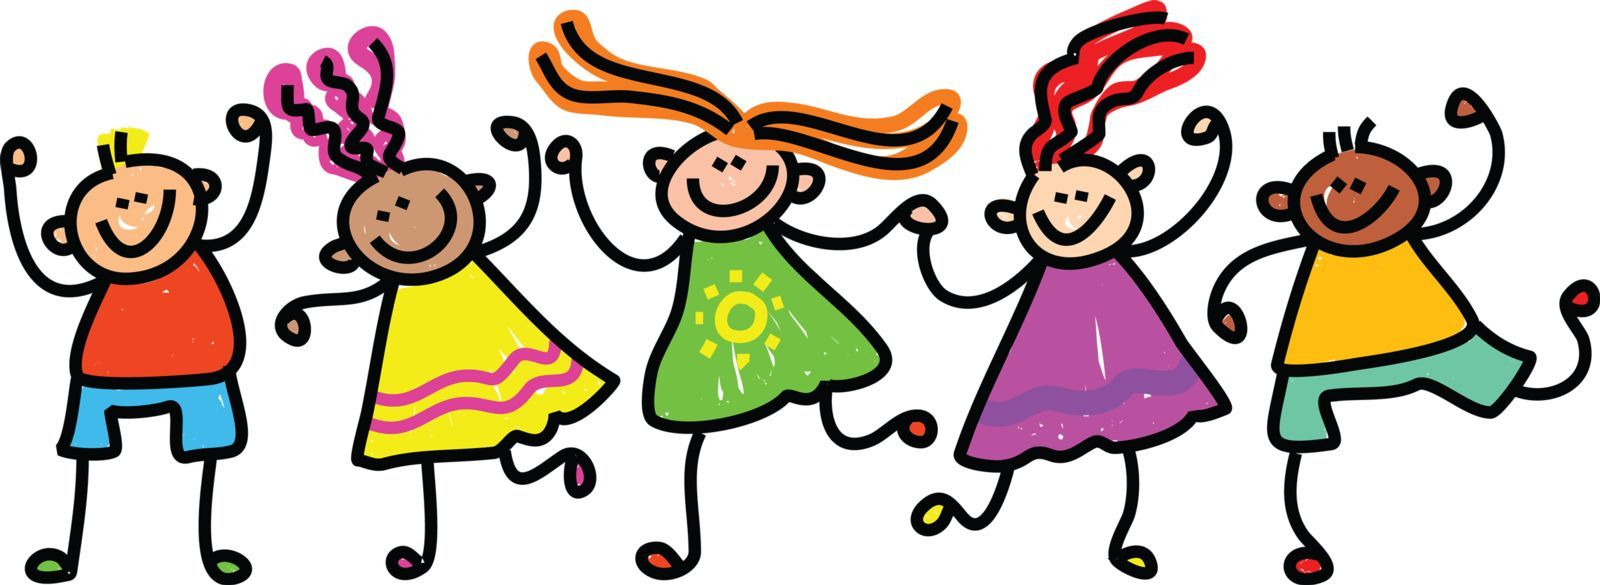 Happy friends clipart picture freeuse download Happy friends clipart 7 » Clipart Portal picture freeuse download